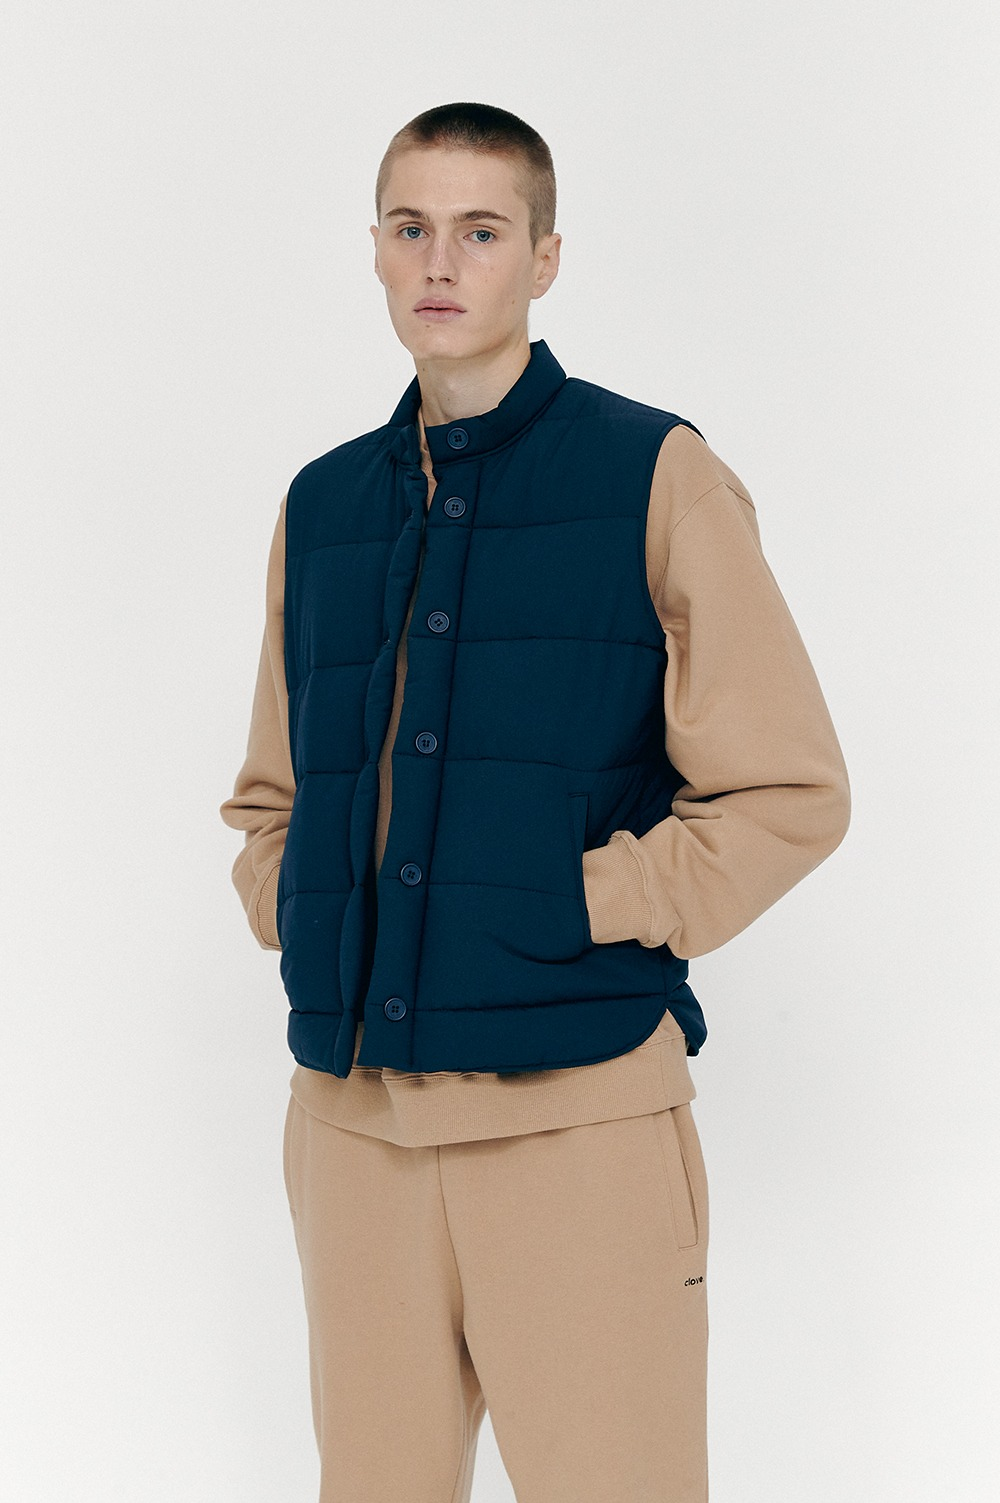 [FW20 CLOVE] Thintulate Padding Vest (Navy)